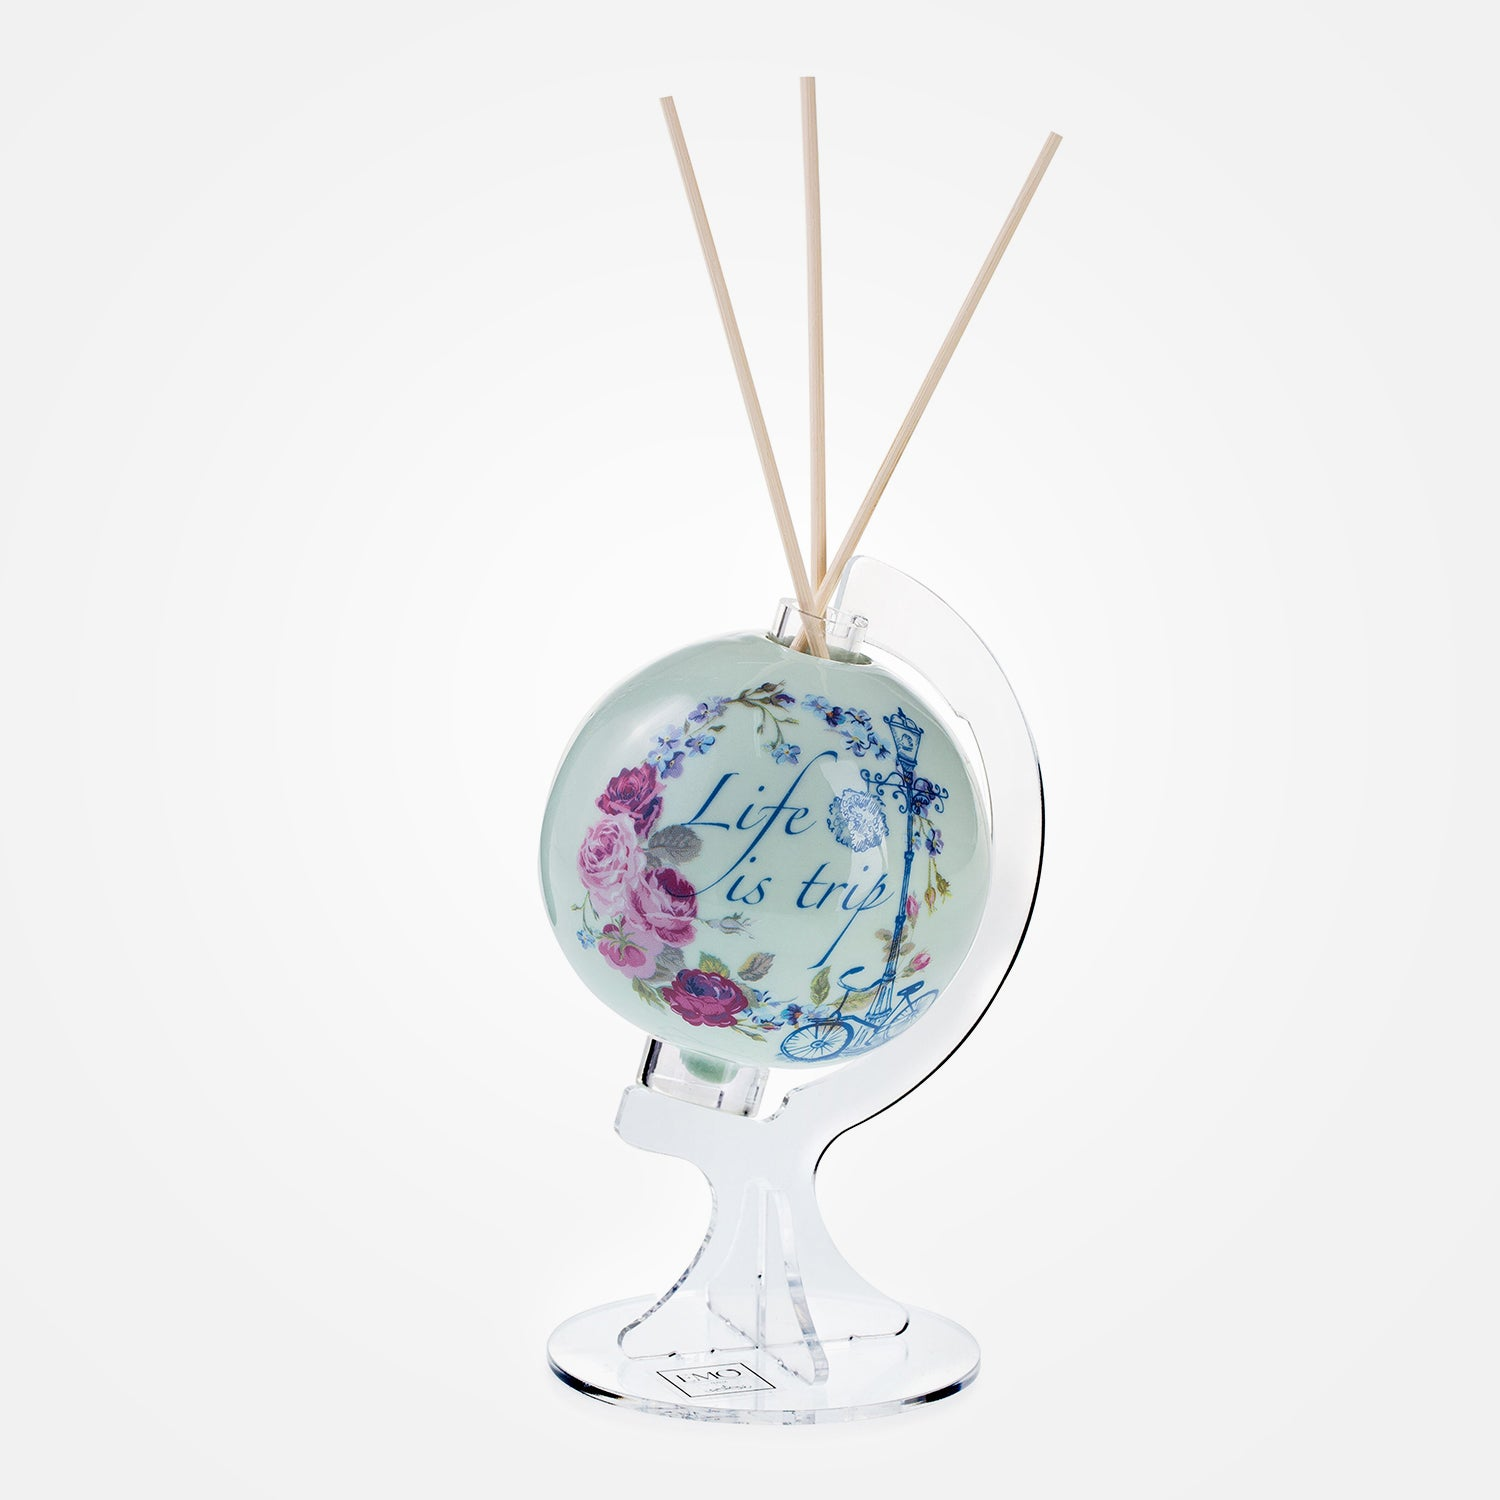 Life is Trip Perfume Diffuser - Le Globe Amore Collection by Emò Italia